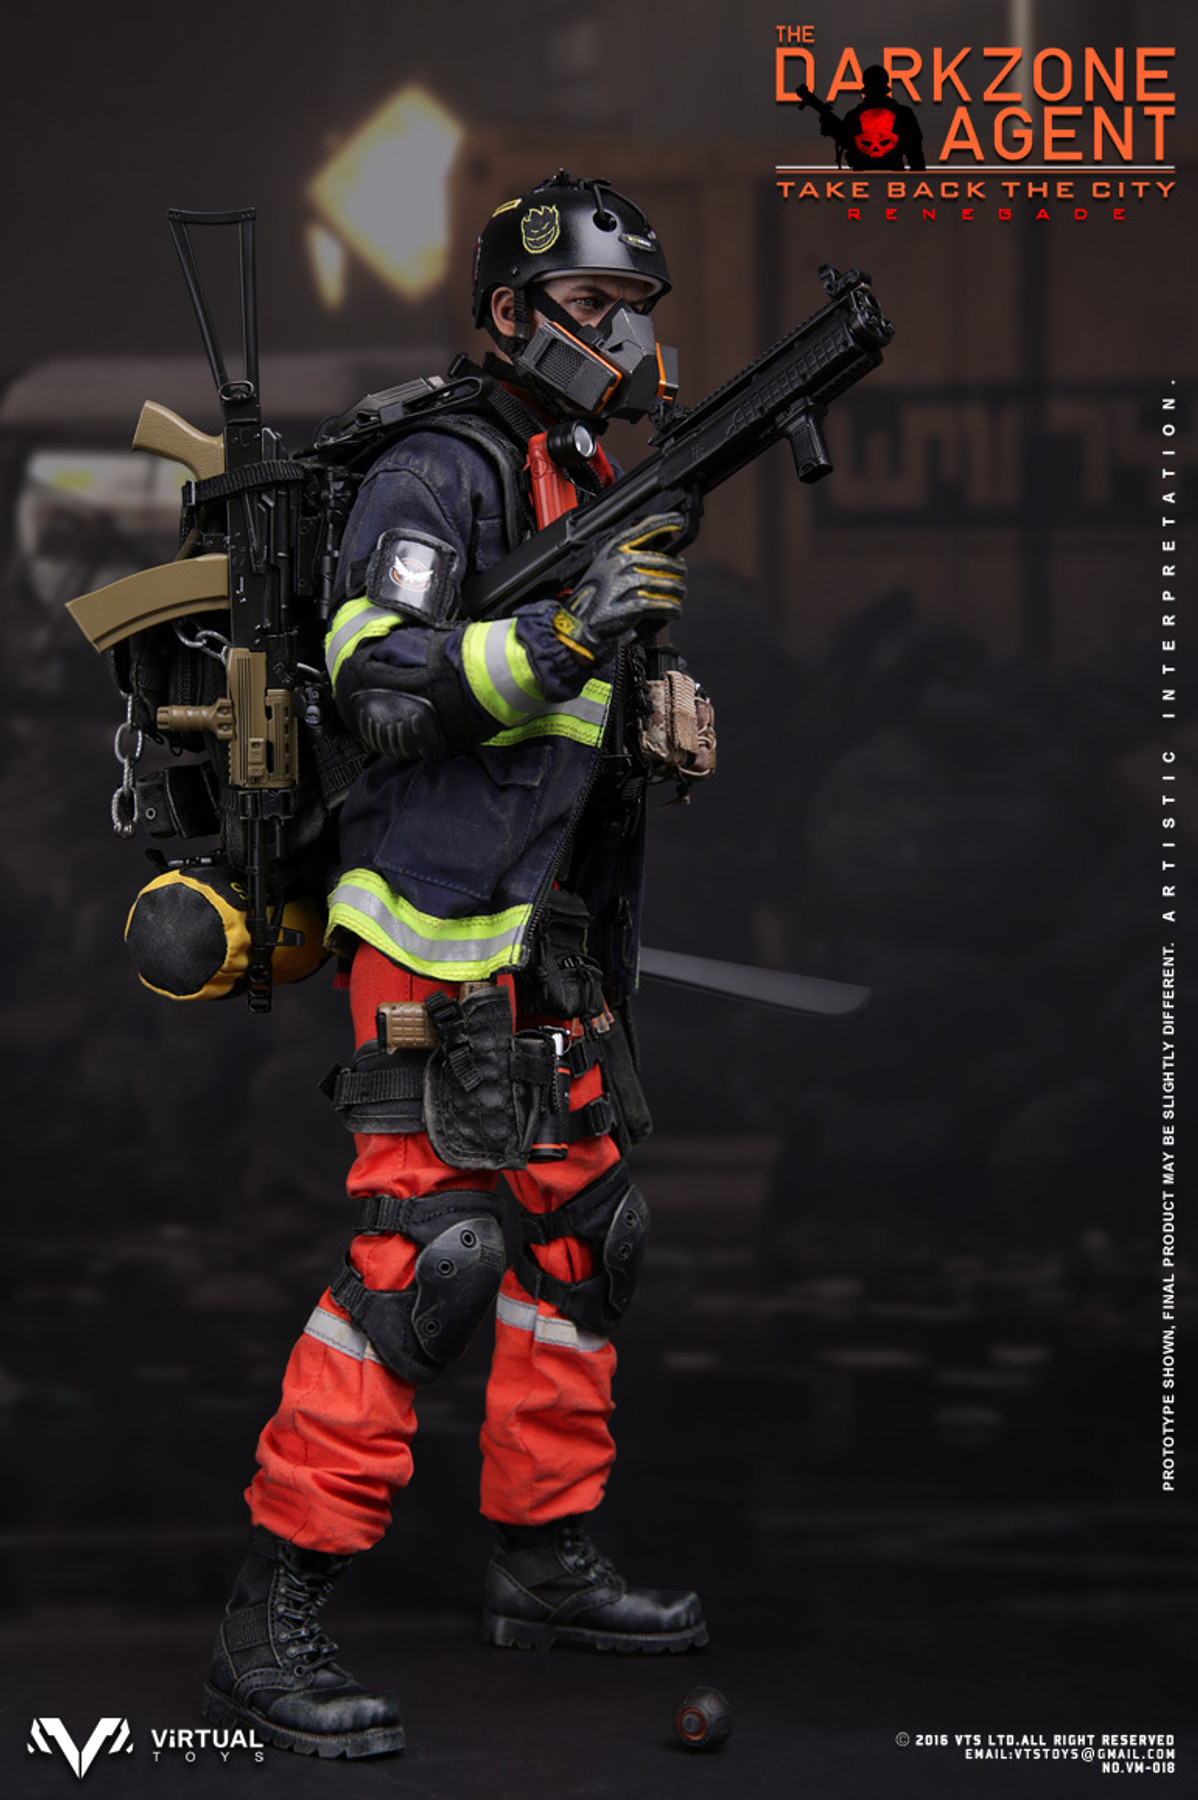 blk T-shirt 1//6 Scale VTS Toys VM-018 THE DARKZONE AGENT RENEGADE